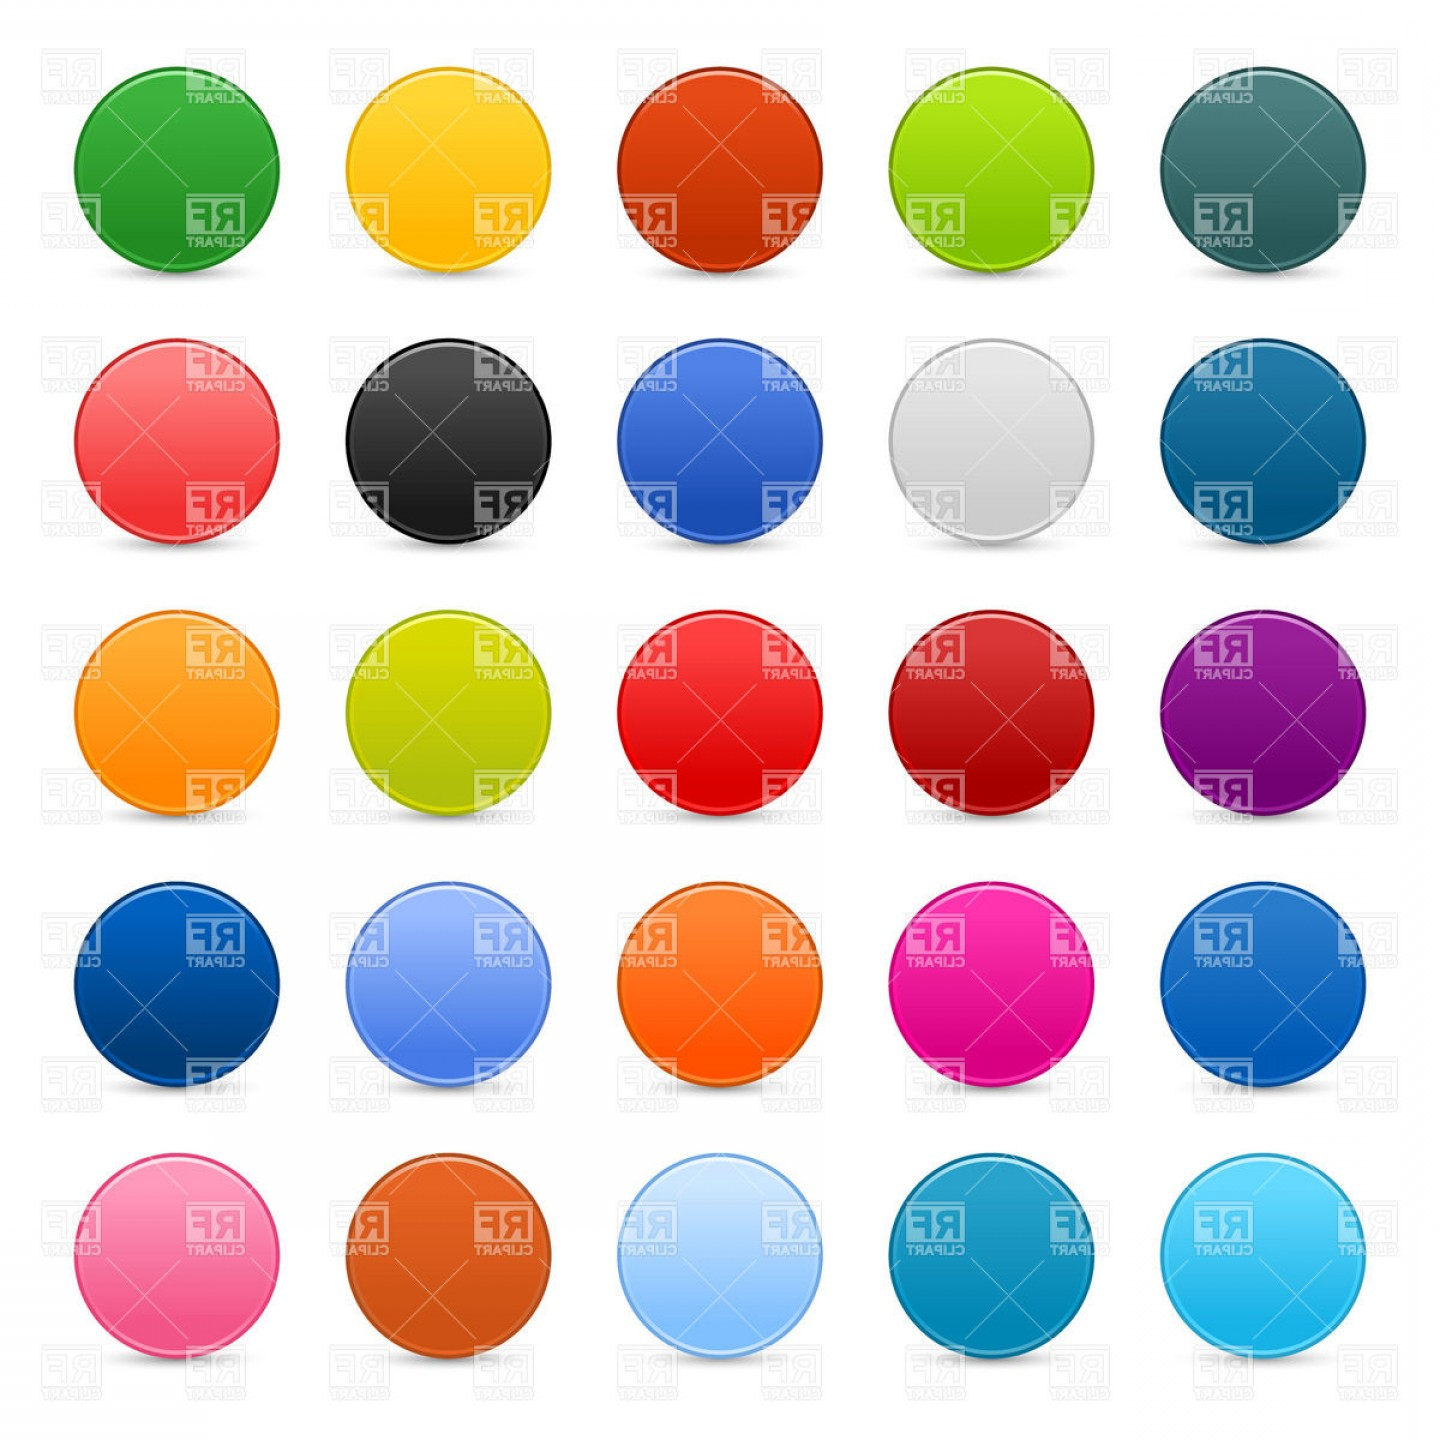 Buttons Vector Art: Blank Round Multicolored Buttons Vector Clipart